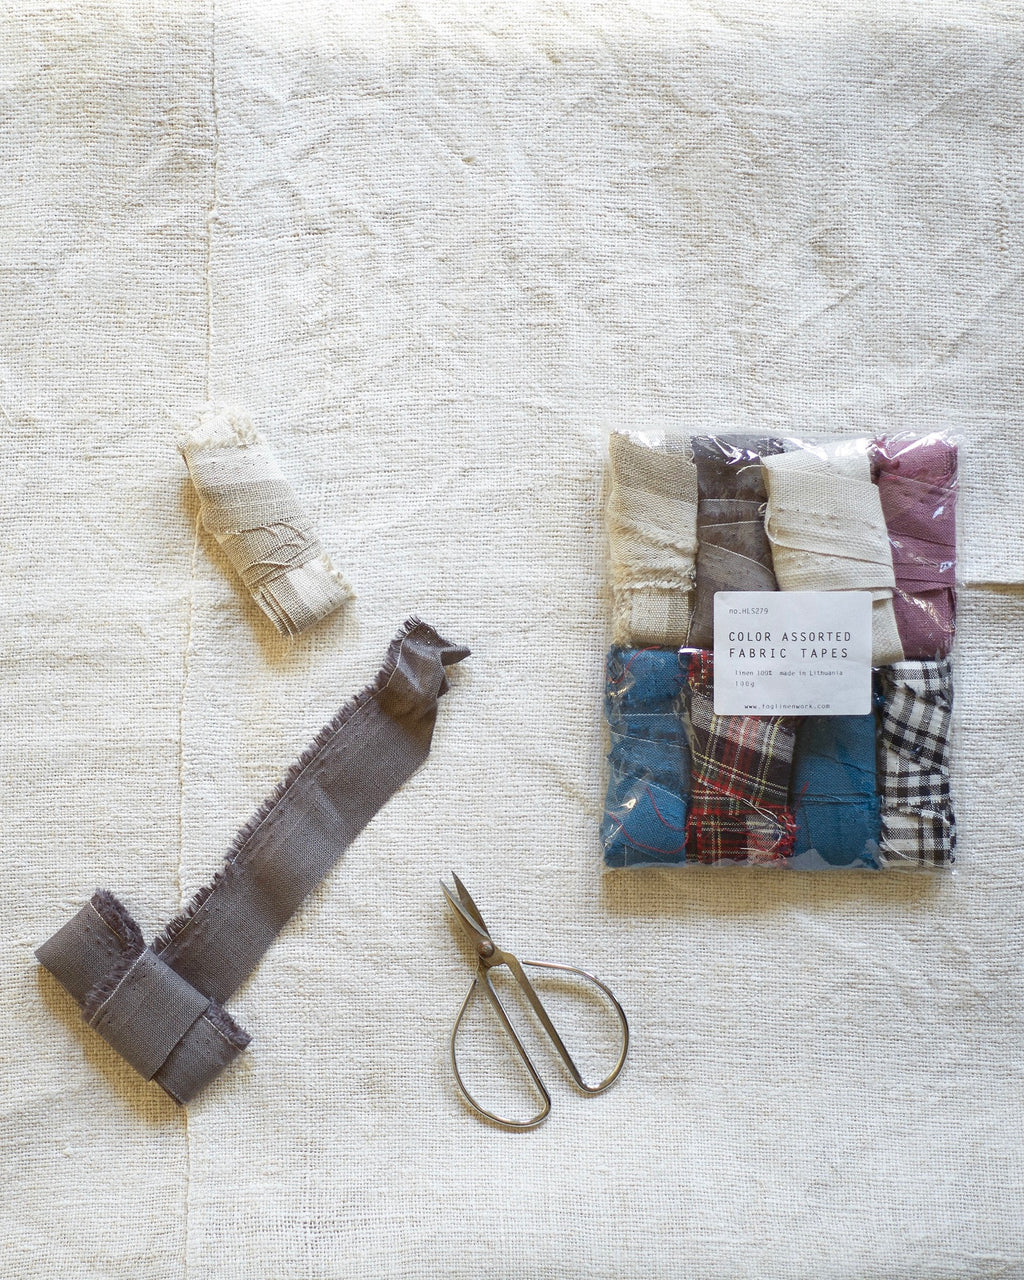 Linen Fabric Tape Set: 100g